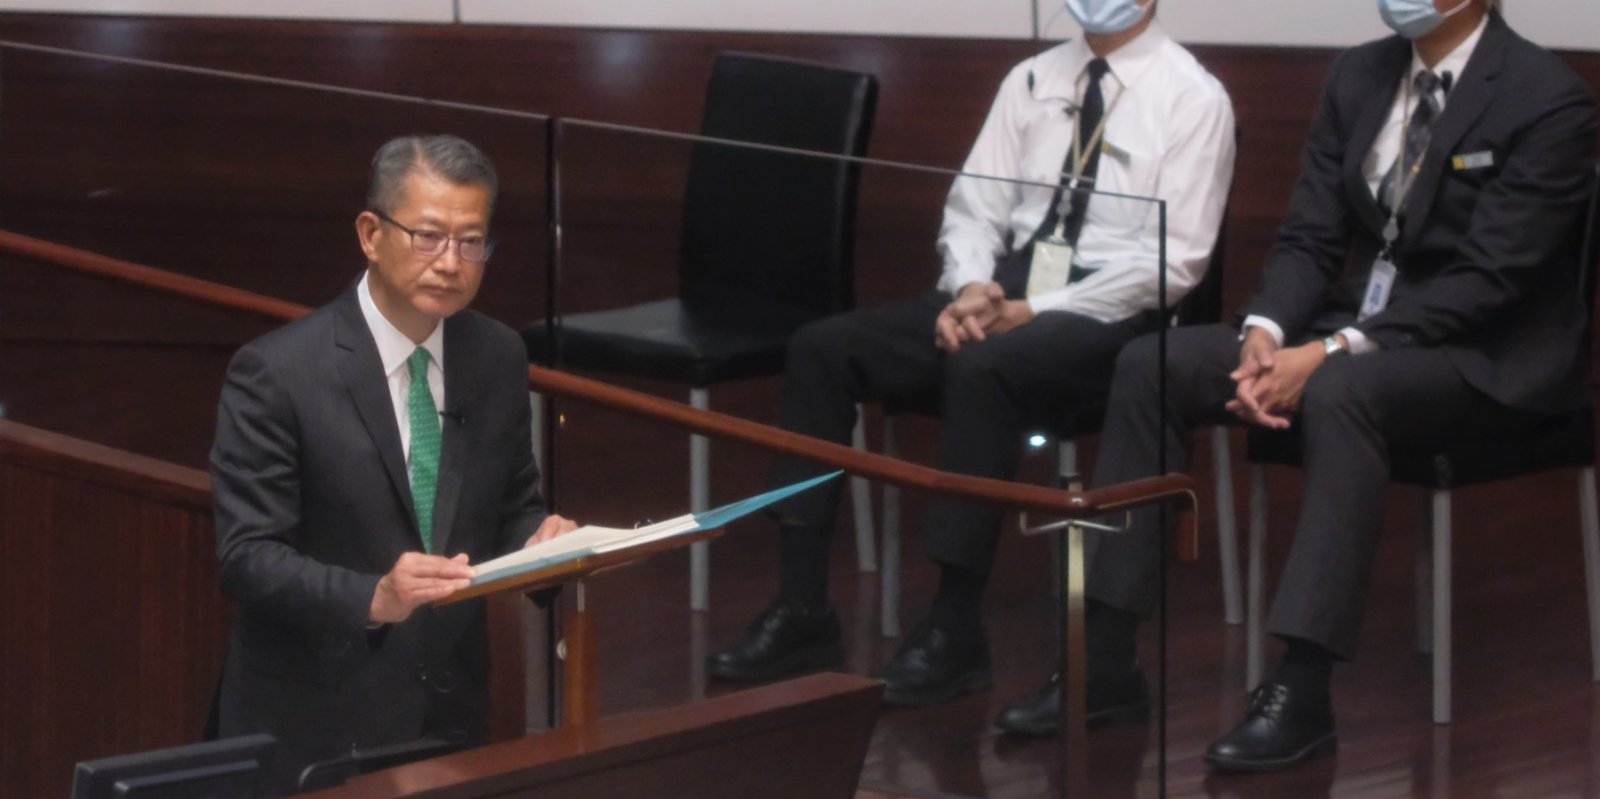 Budget | Deficit estimated at HK$101.6 bn in 2021/22 financial year